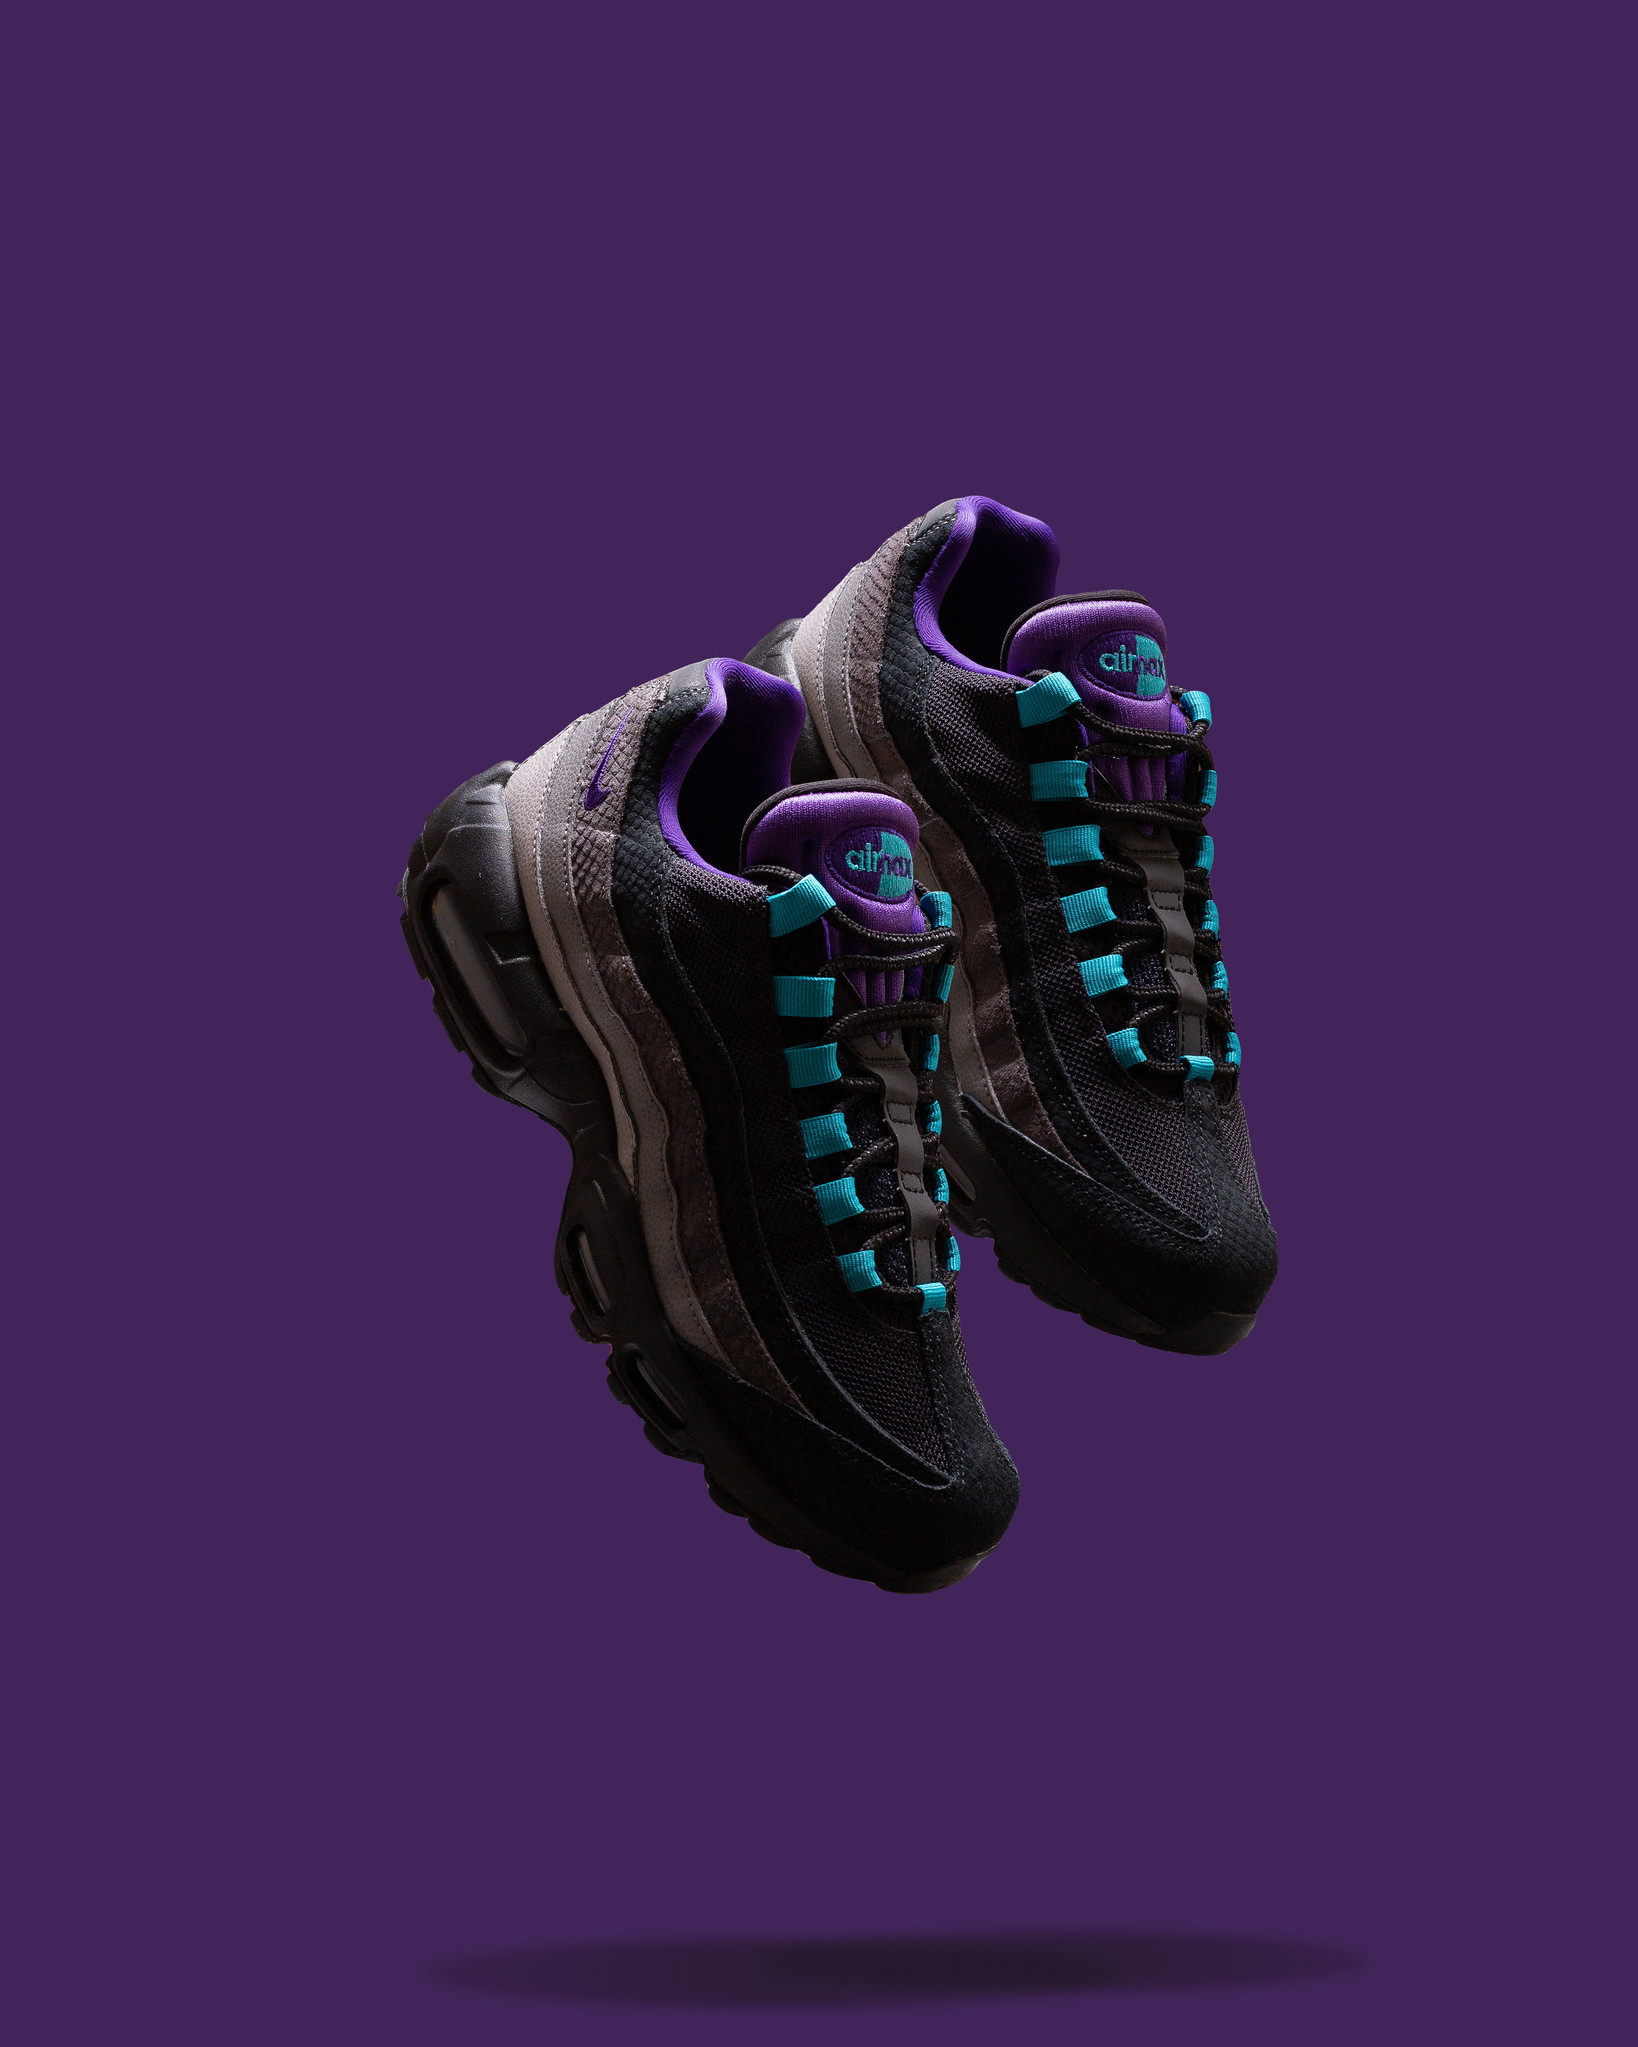 Nike Nike Air Max 95 'Grape'